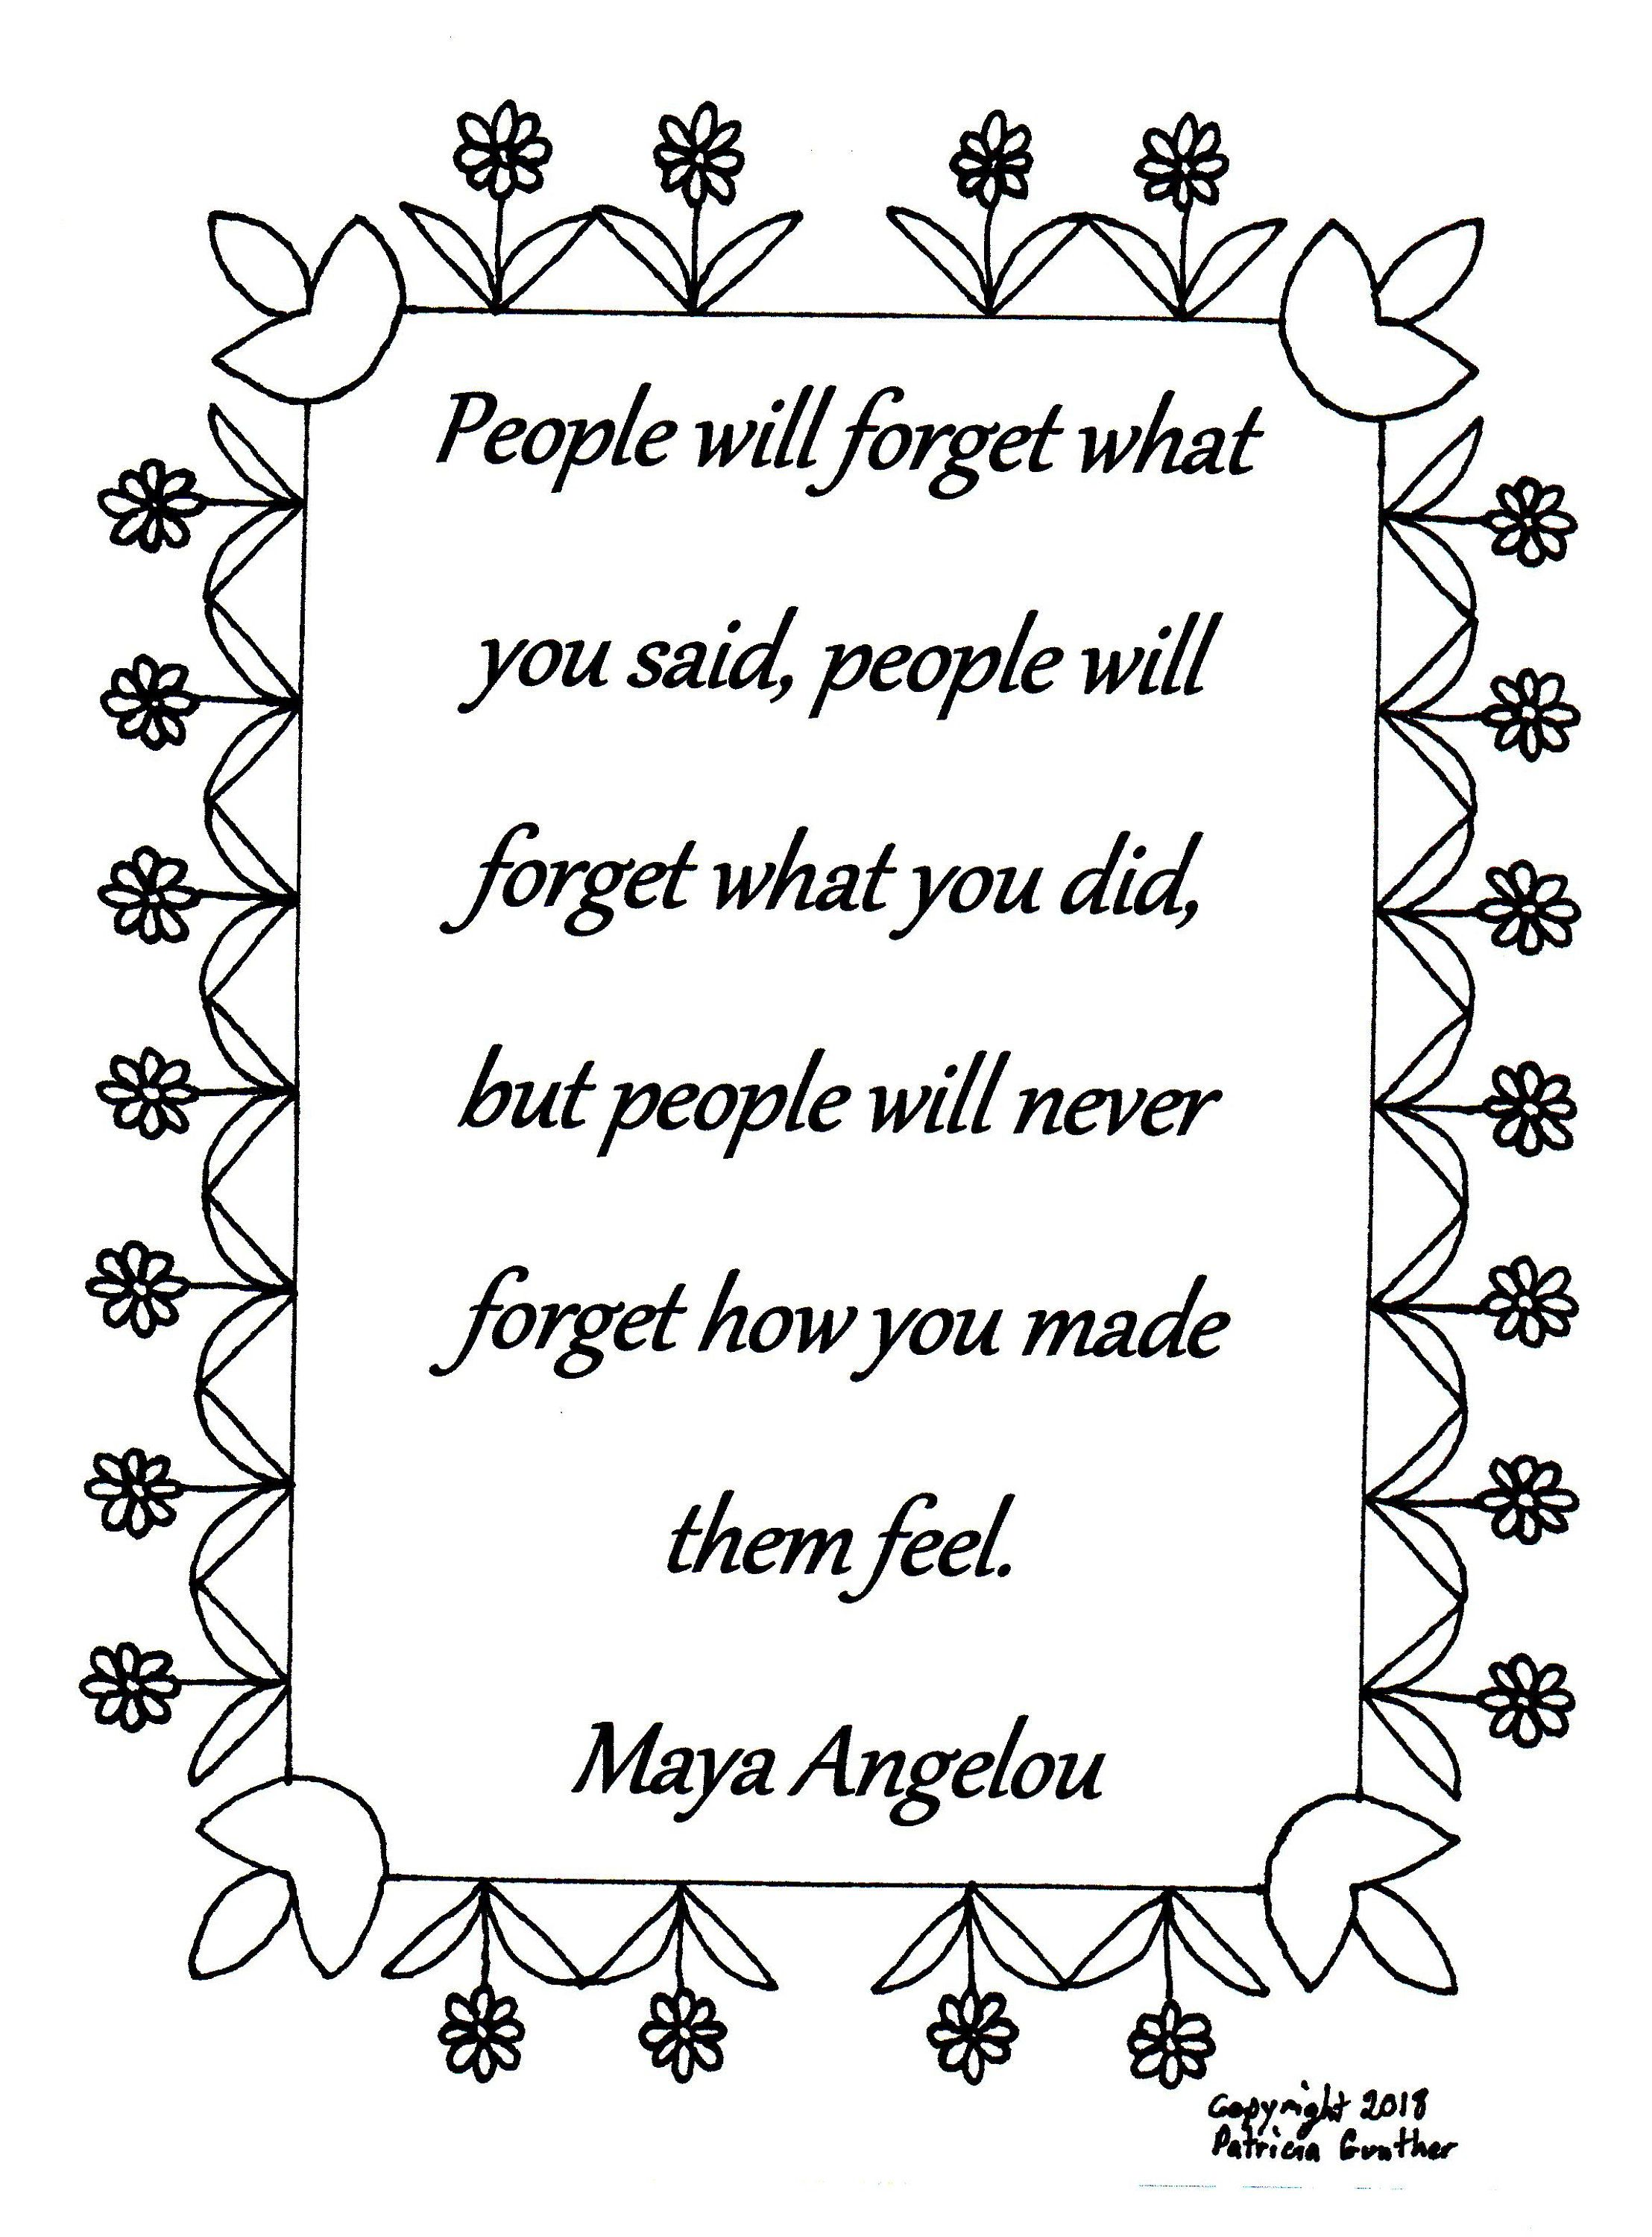 People Will Forget What You Said Maya Angelou Quote Coloring Page